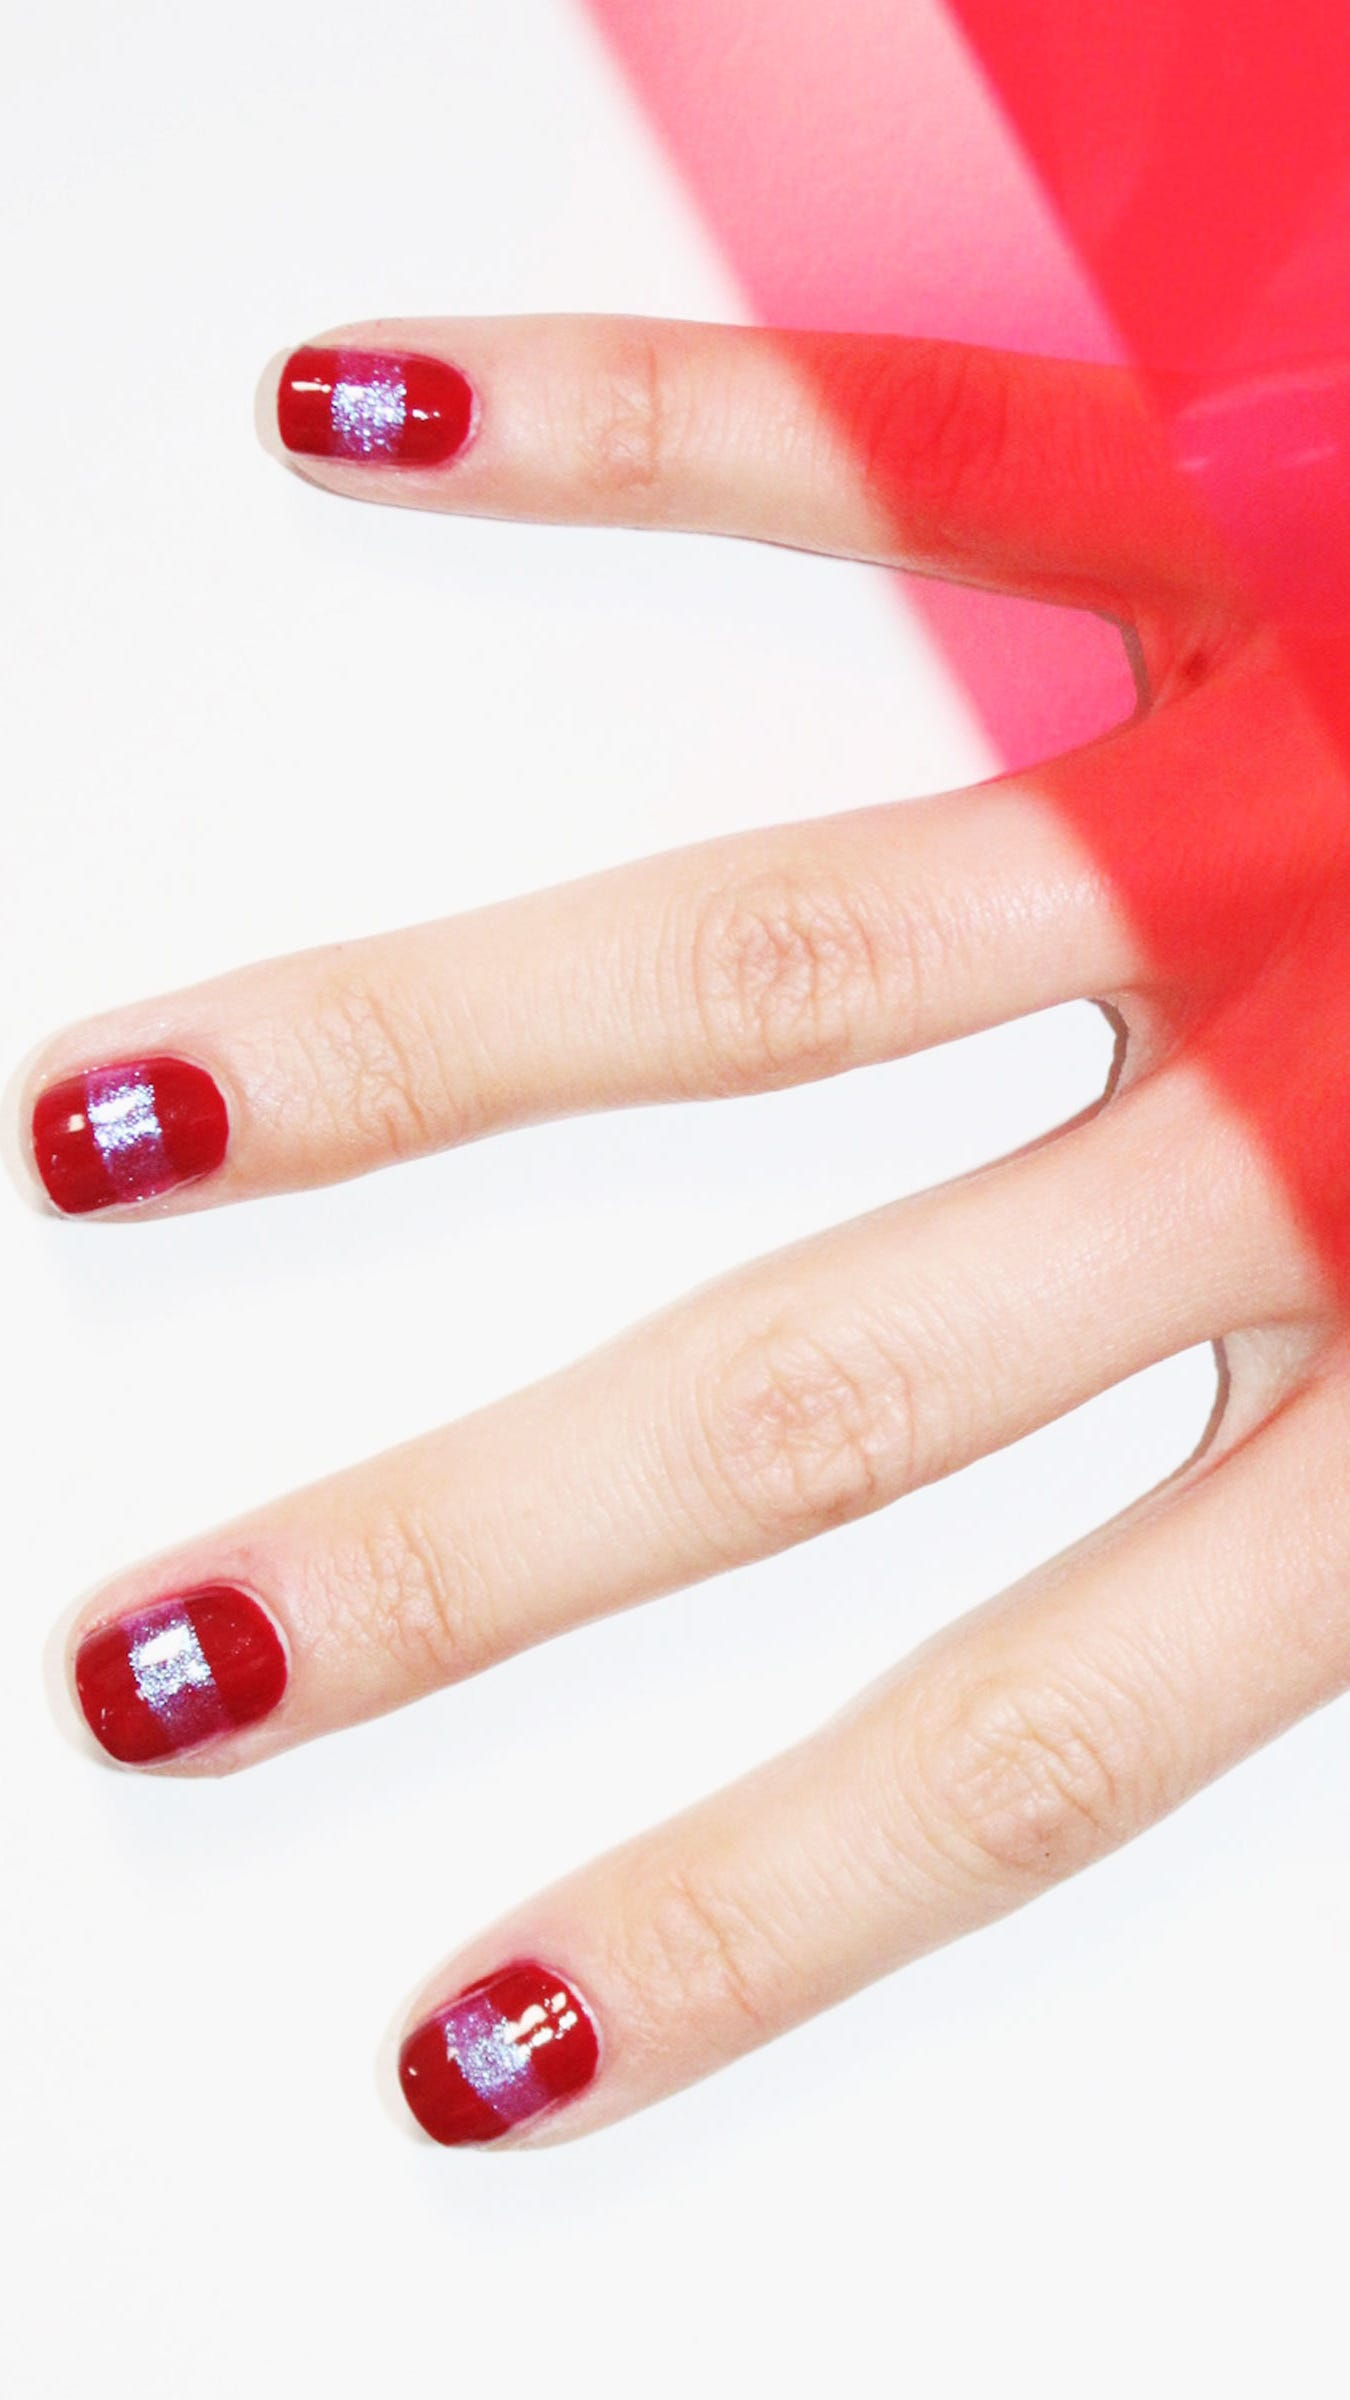 How To Layer Nail Colors - Mixing Polish